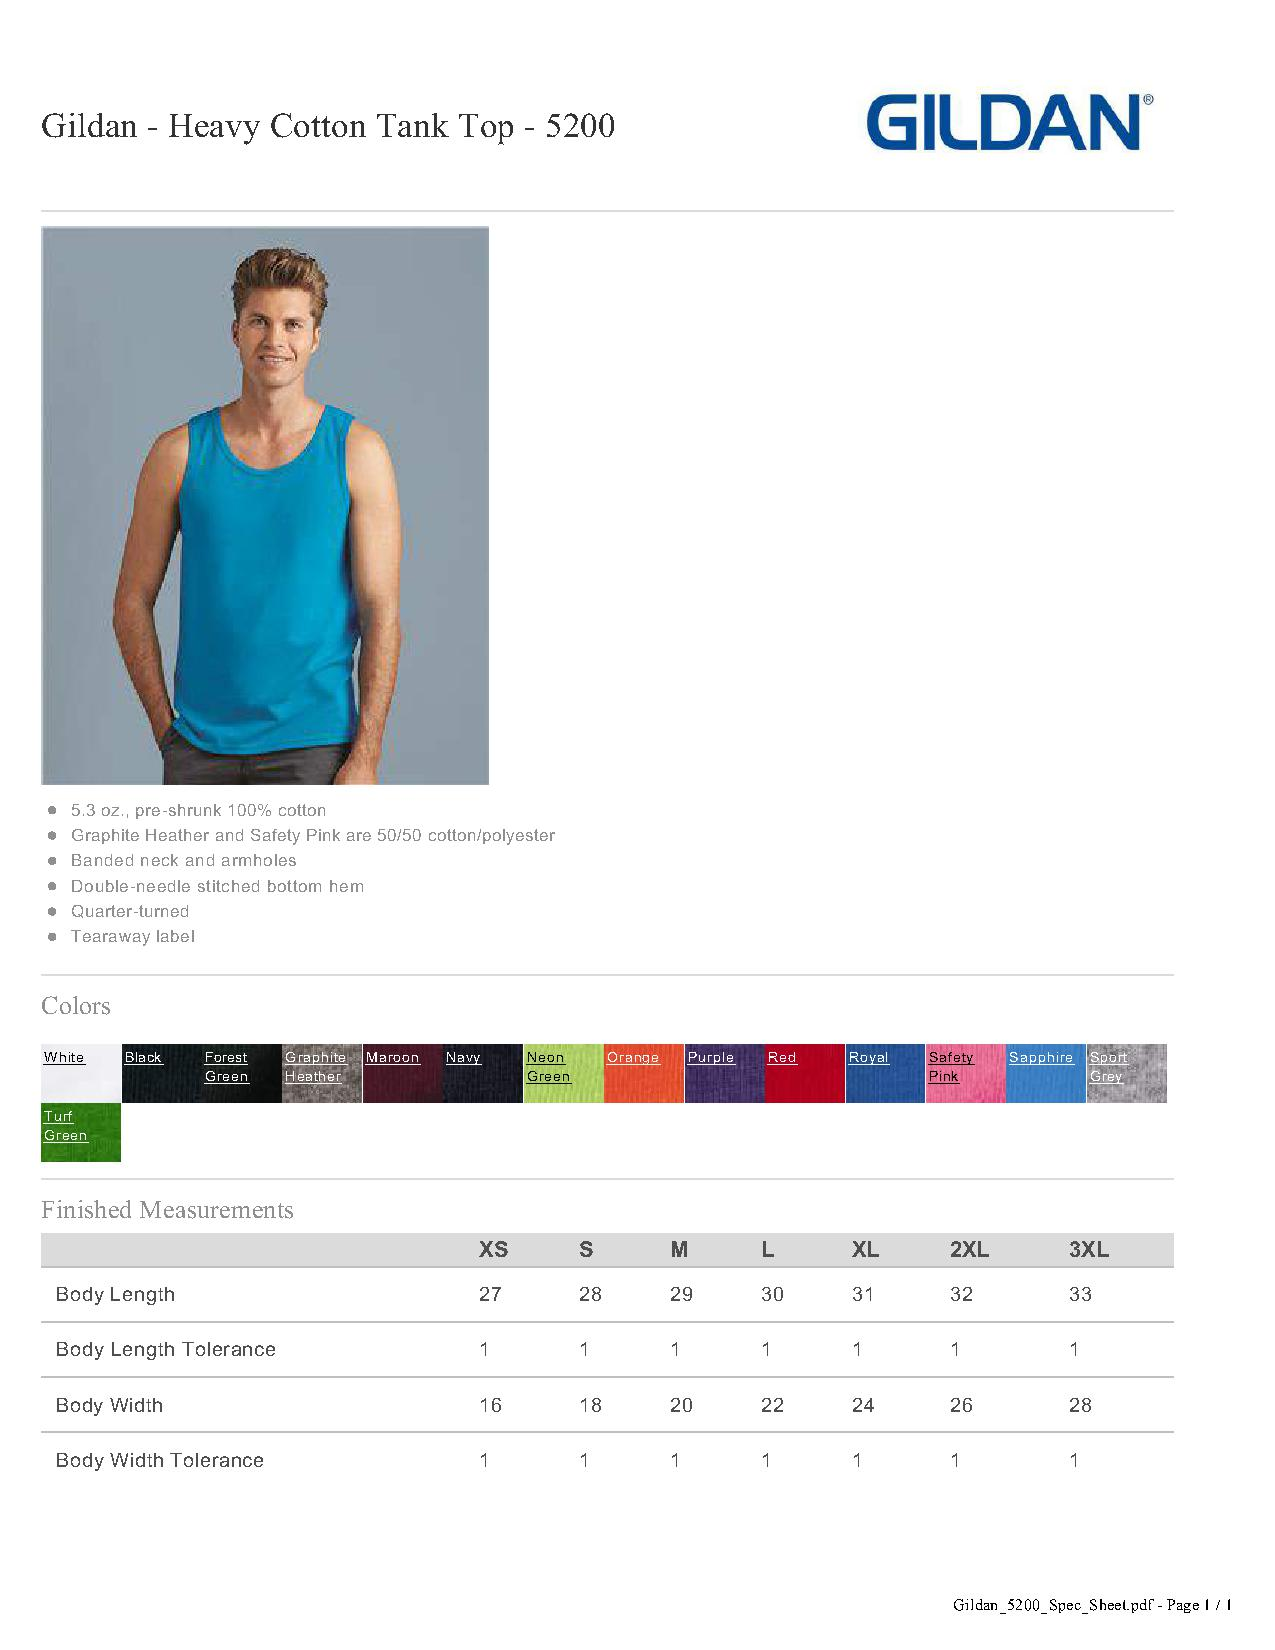 20d372ab84 Popular Designs. custom design of Gildan 5200 - Heavy Cotton Tank Top